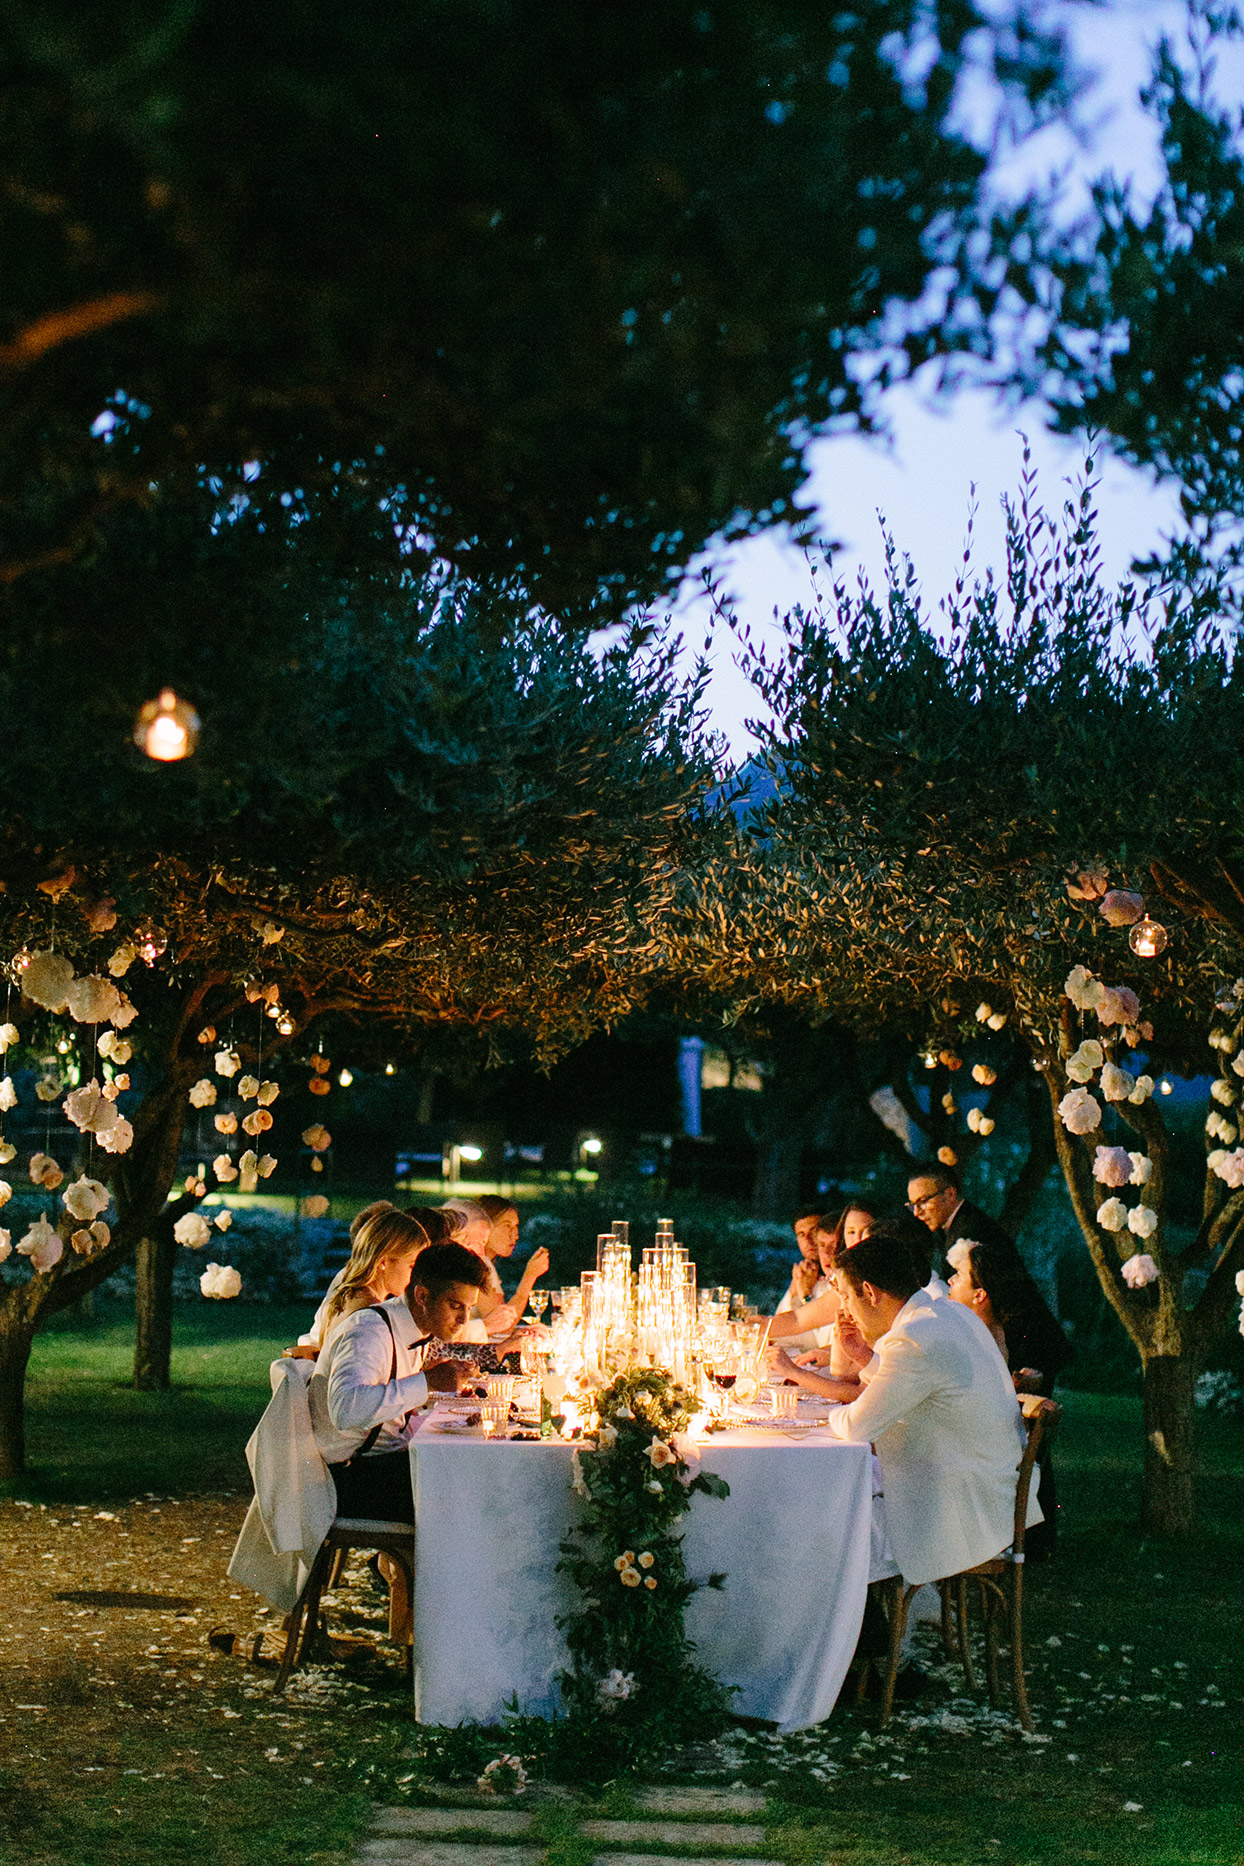 jacqueline david wedding intimate candle lit dinner